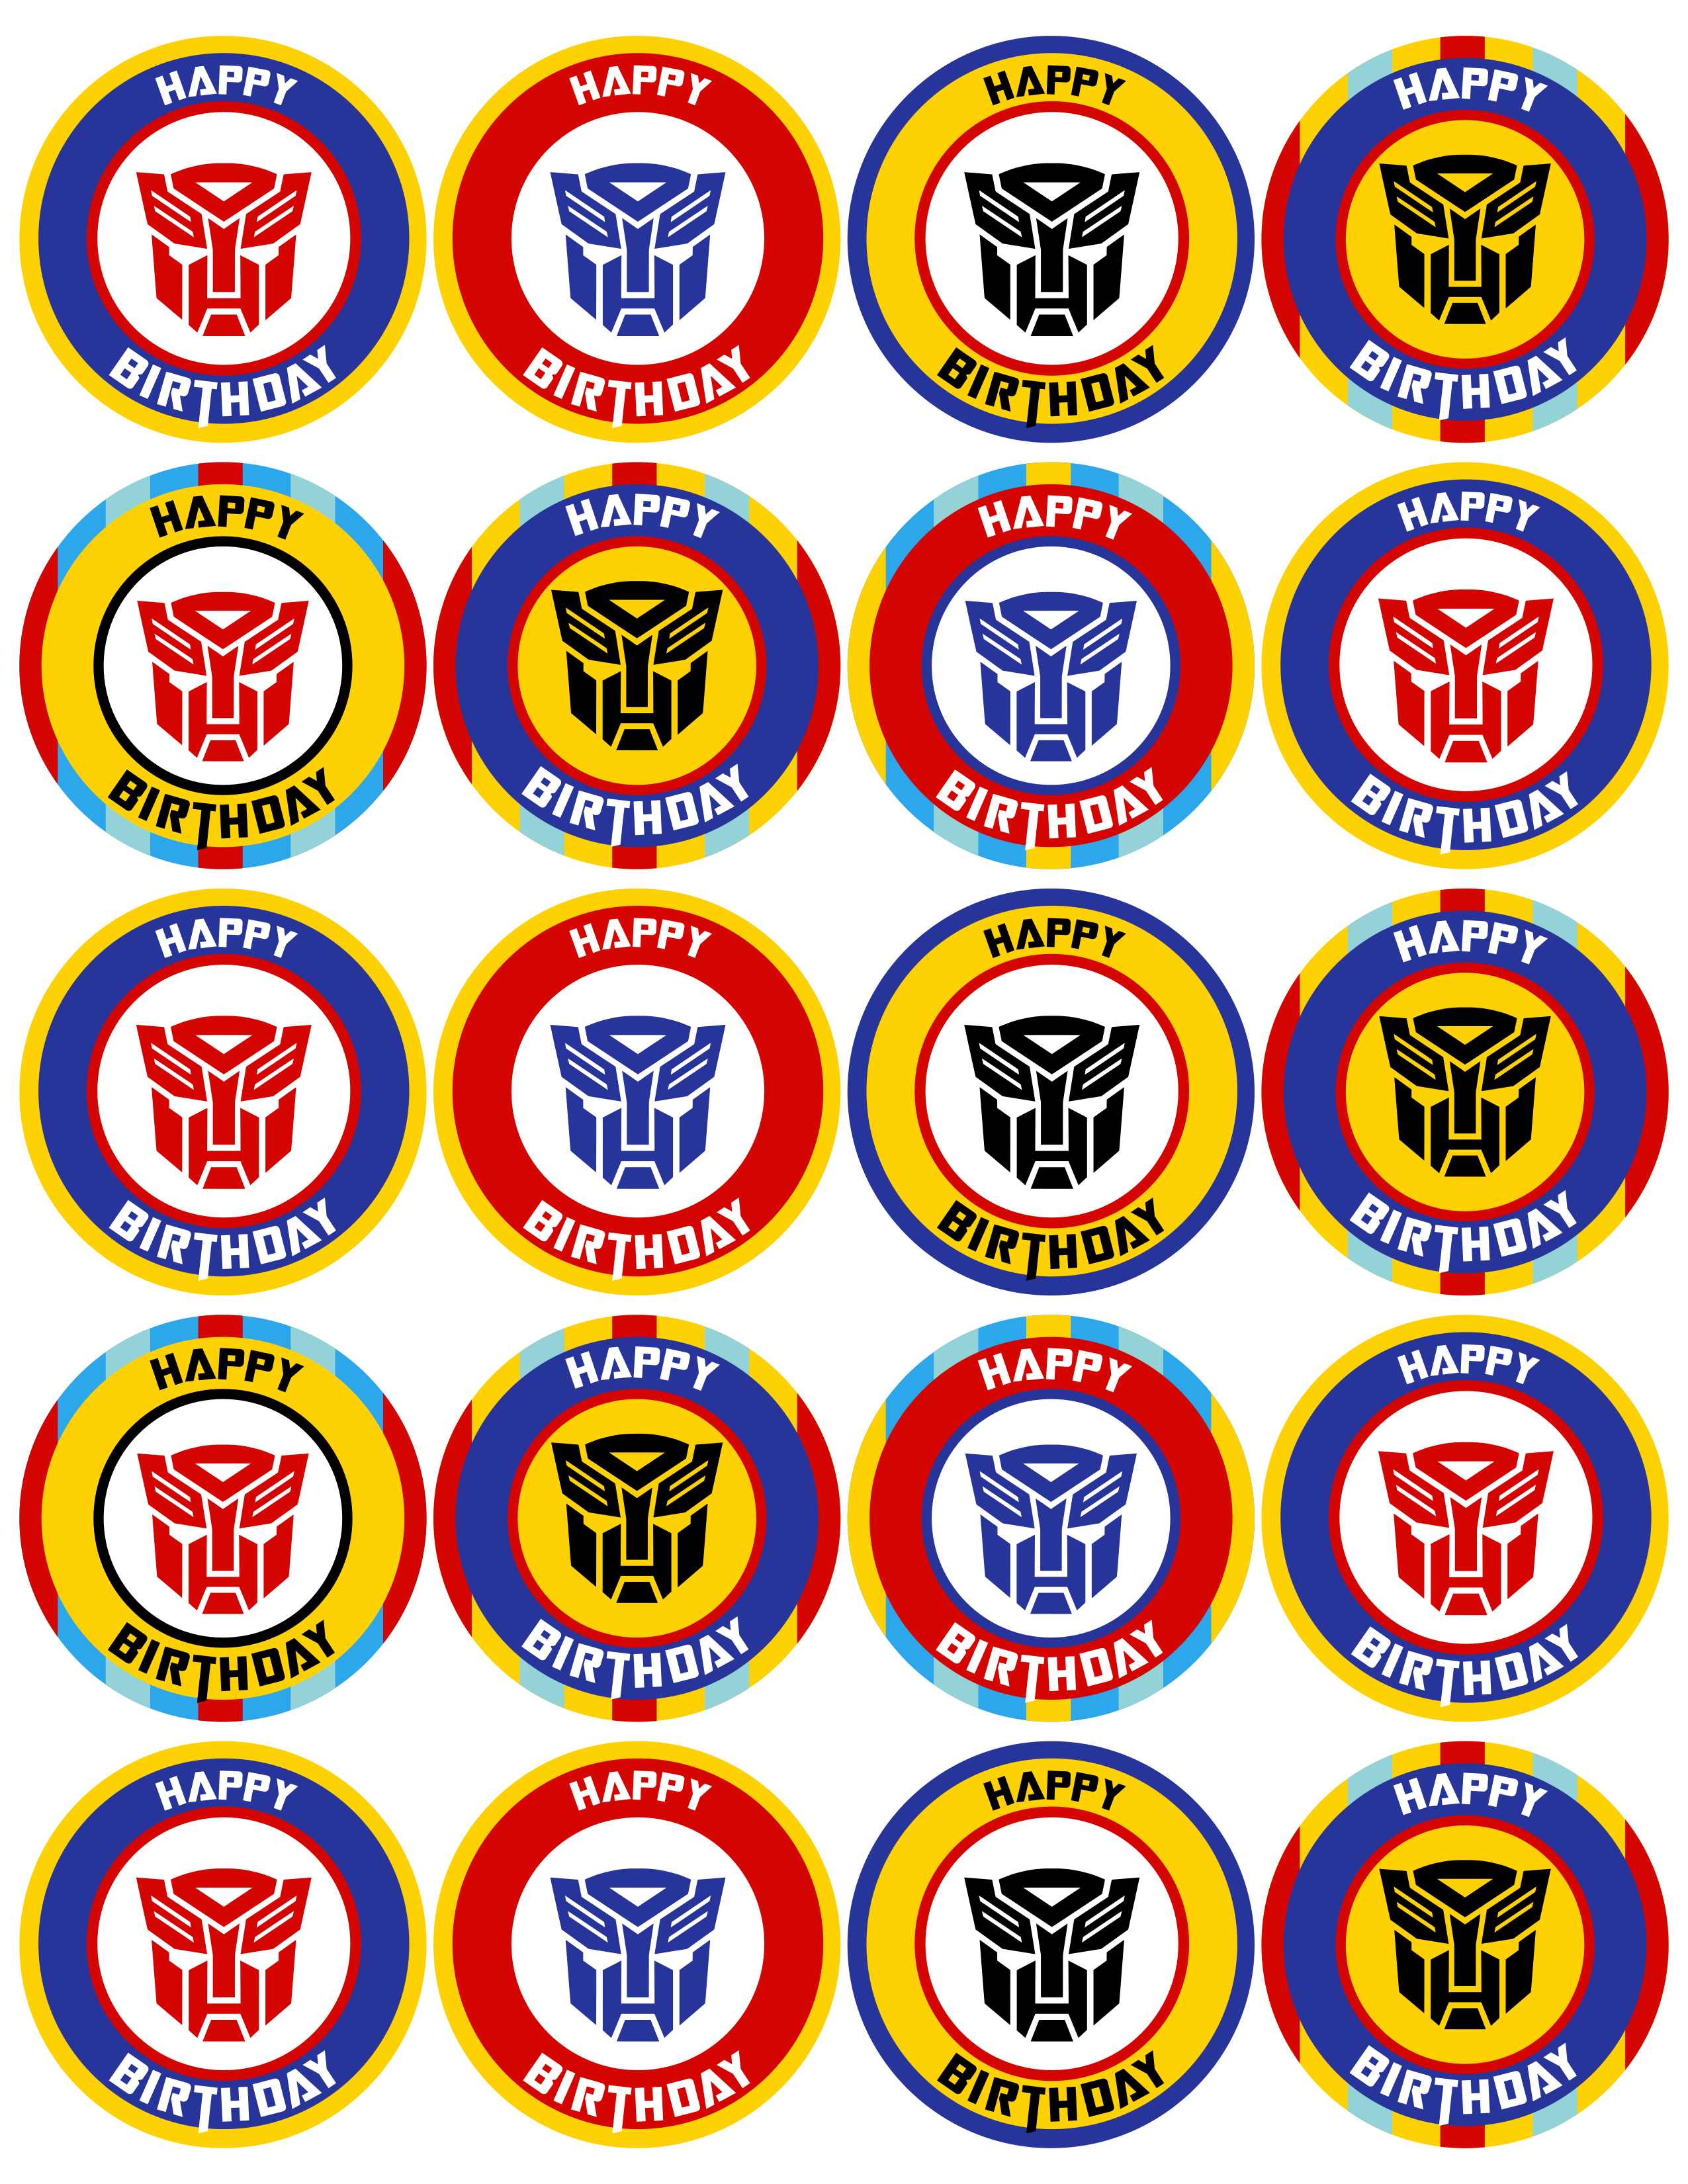 Transformers Birthday Party Decorations On A Budget Plus Free - Transformers Party Invitations Free Printable